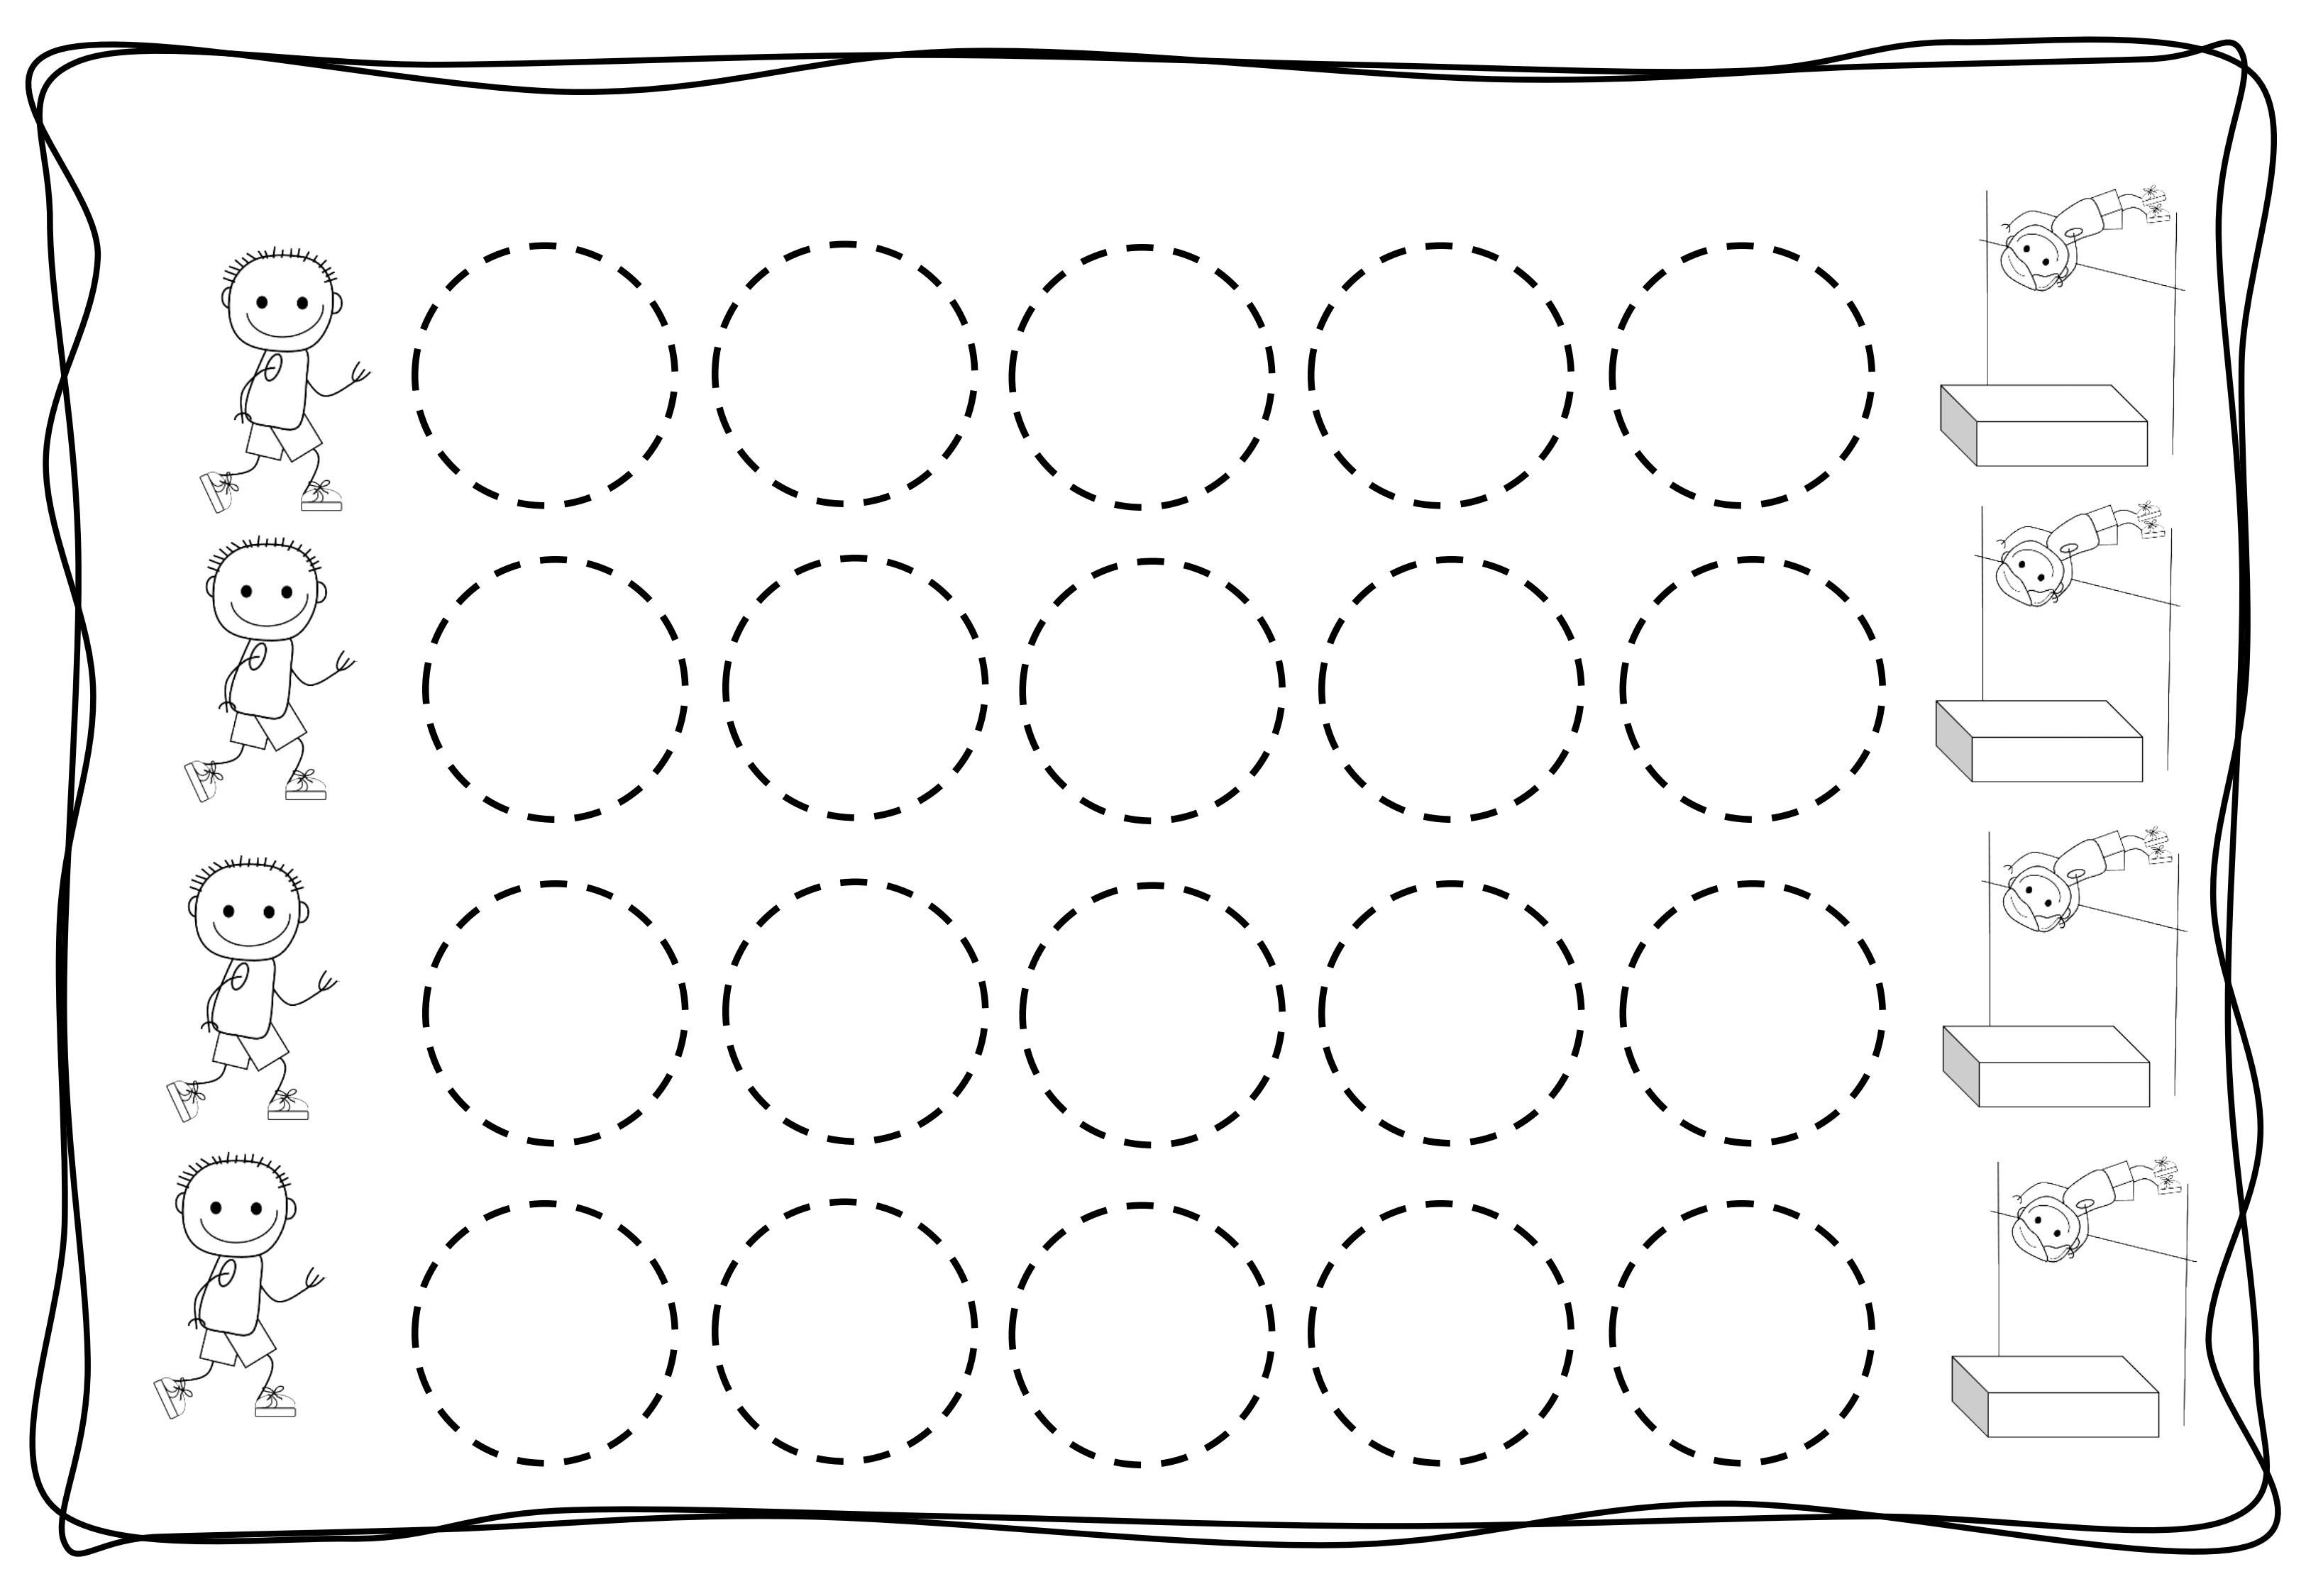 how to draw circles on calsspad